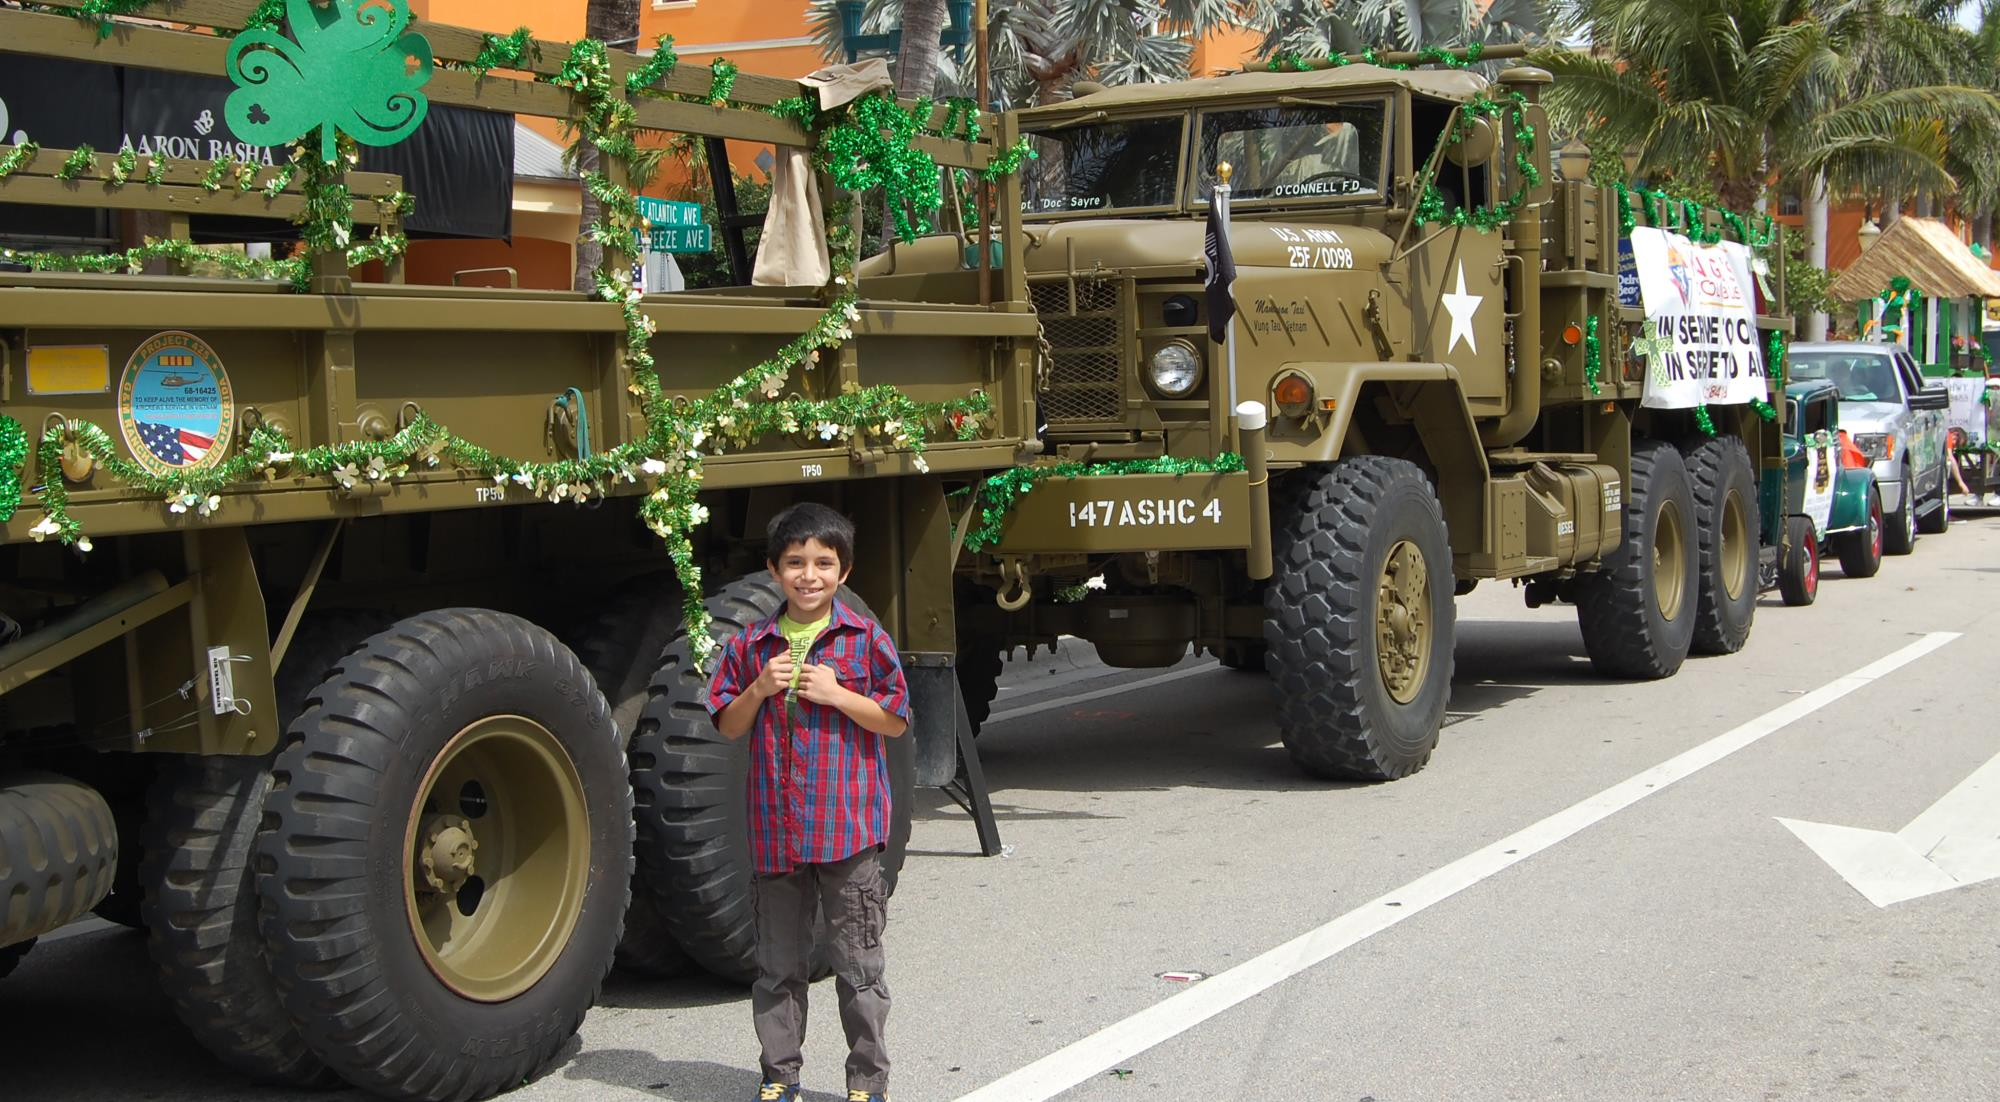 St Patrick Parade boy and trucks